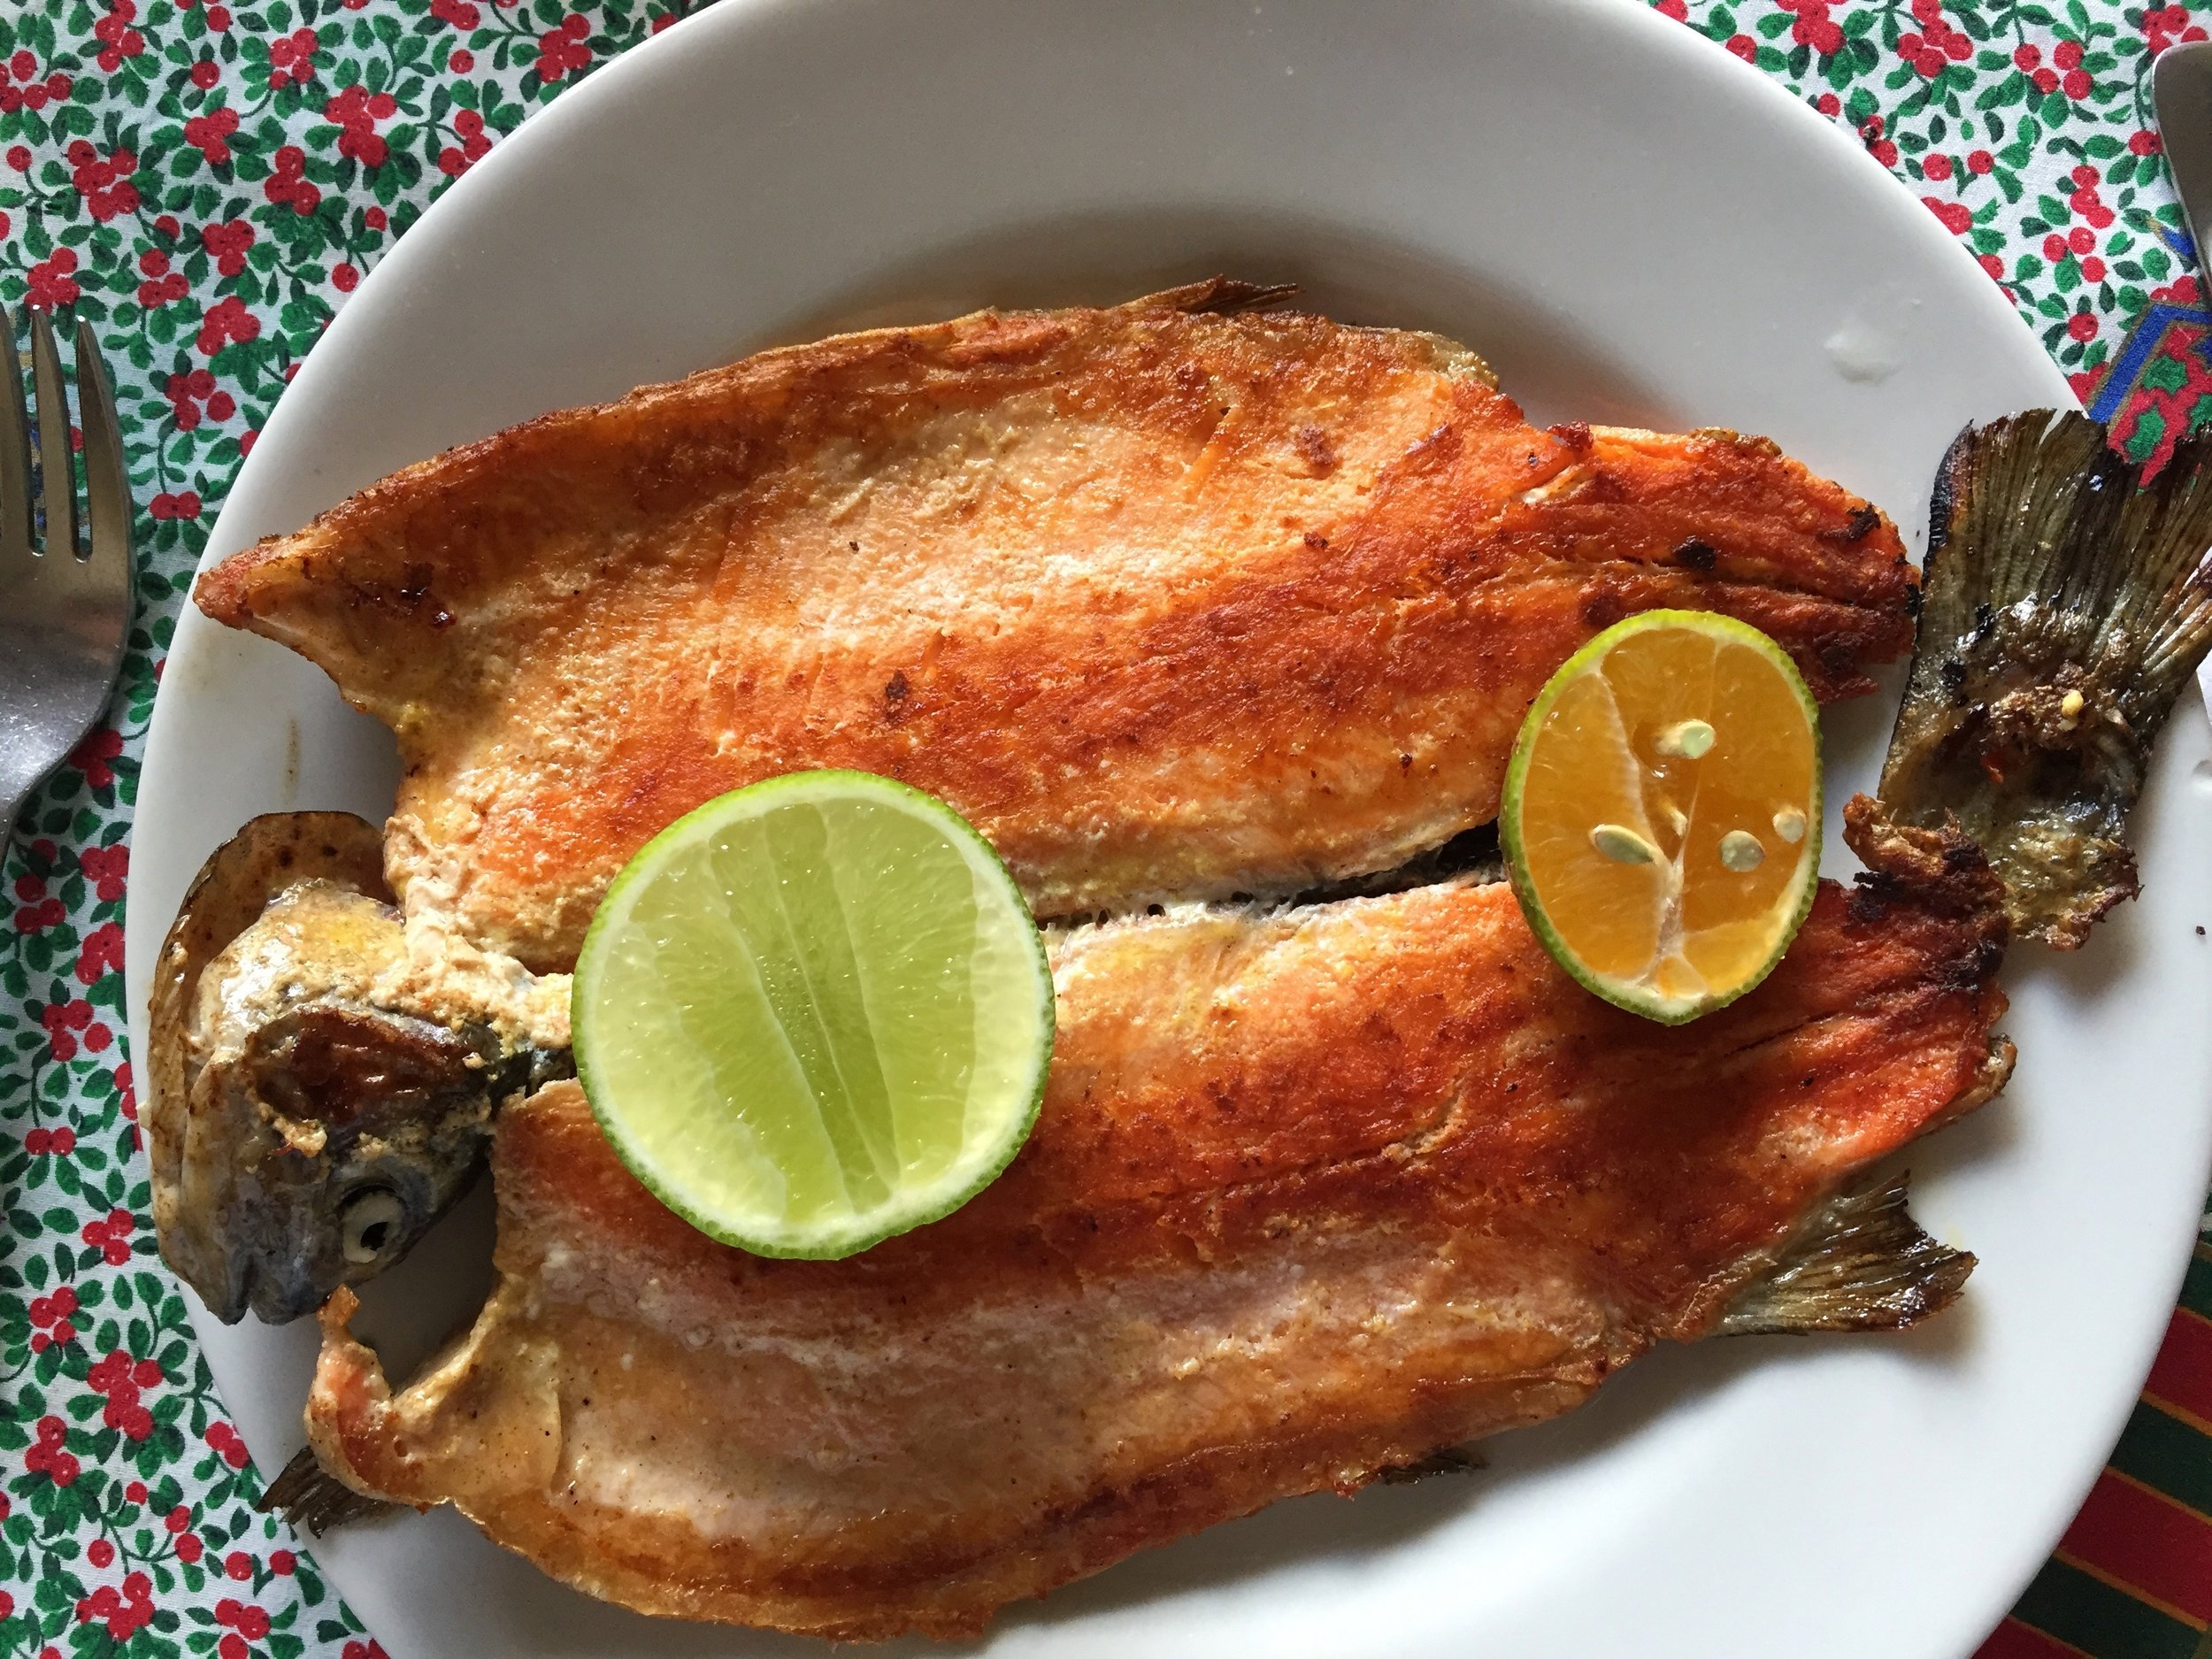 Locally farmed trout with garlic and citrus.